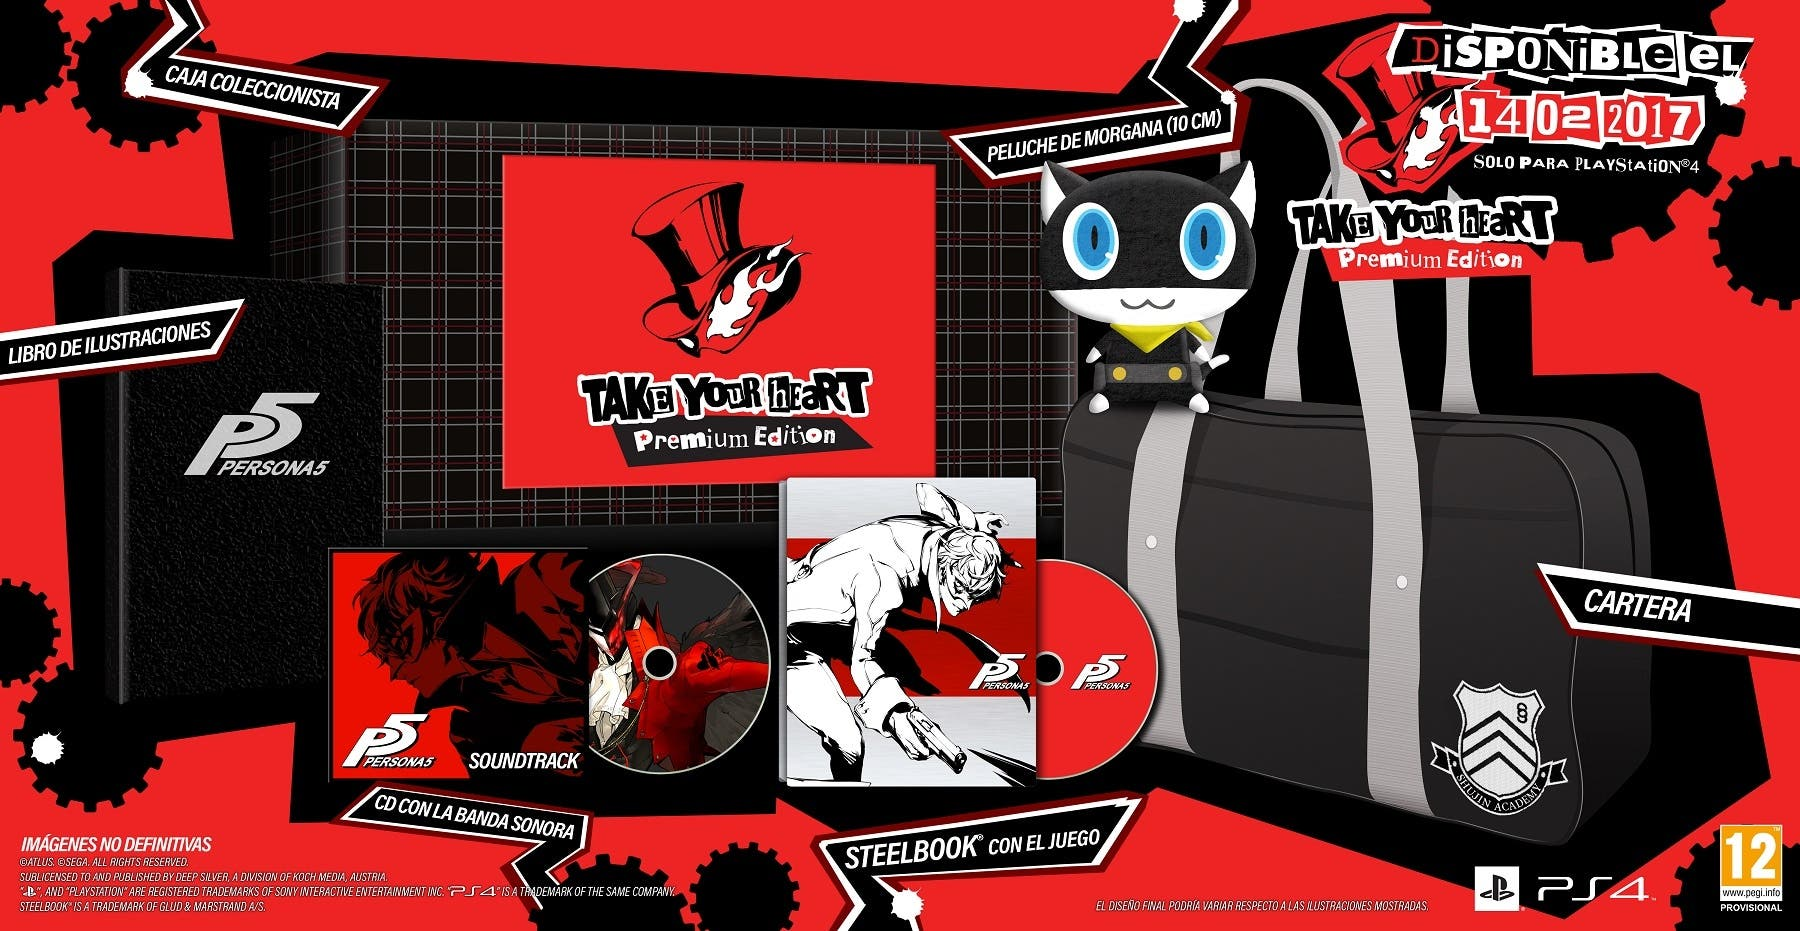 persona5-premiumedition_uqsw